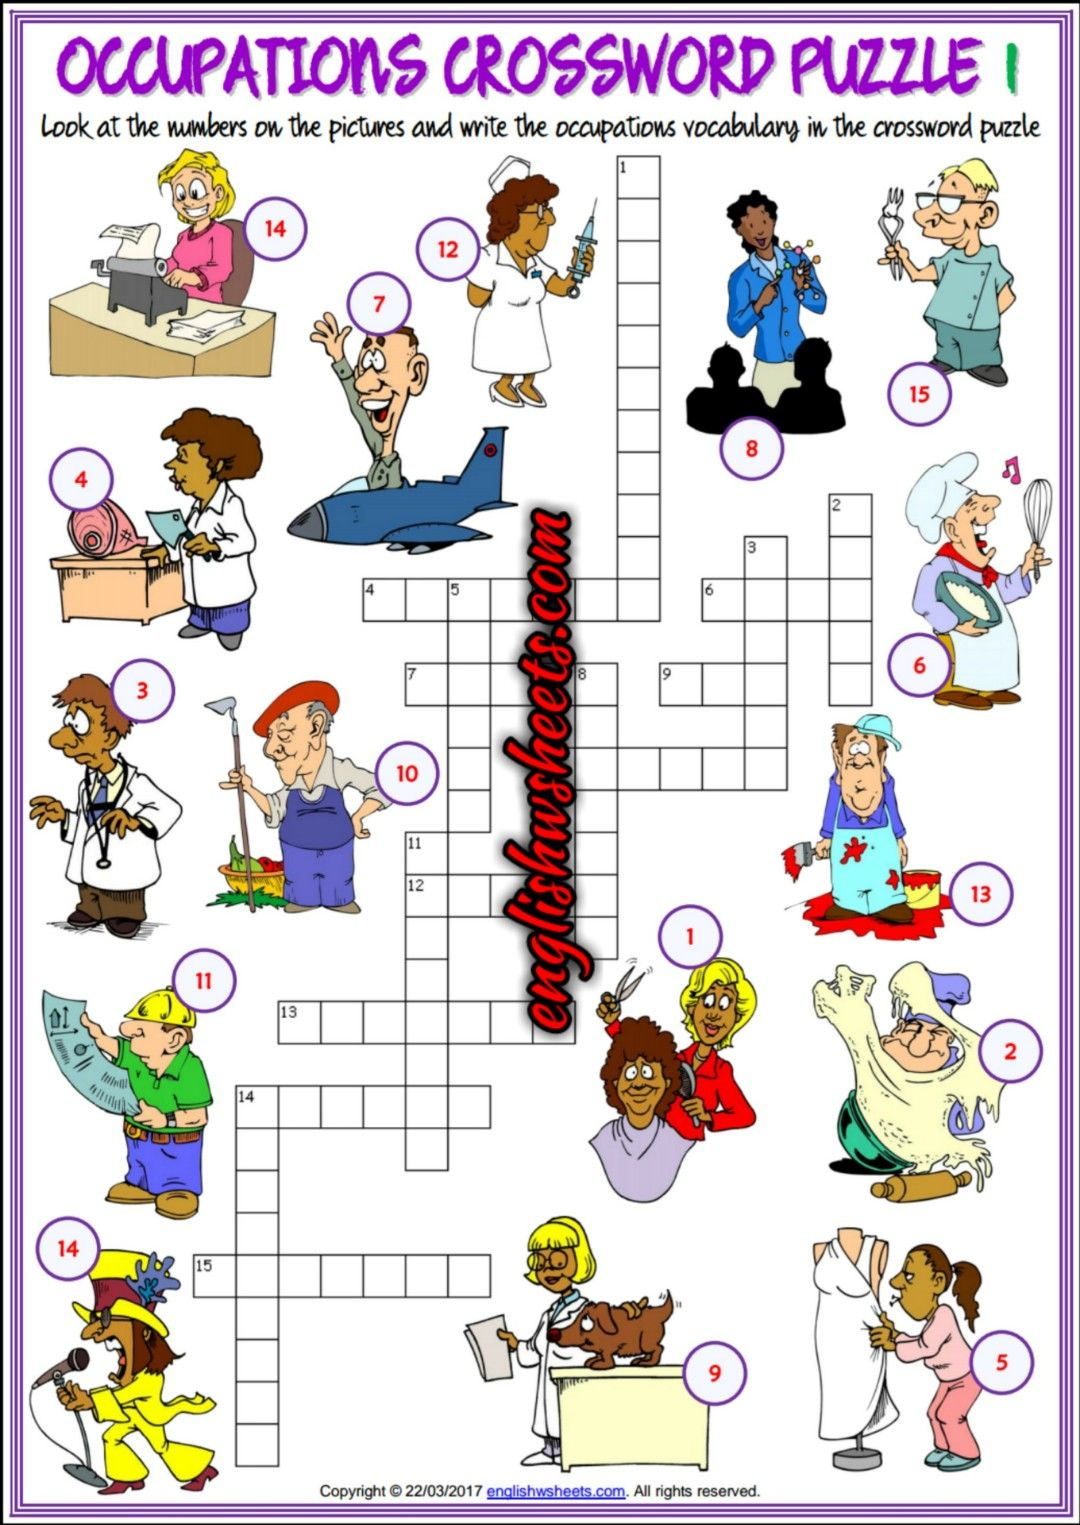 Jobs Occupations Professions Esl Printable Crossword Puzzle Worksheets For Kids